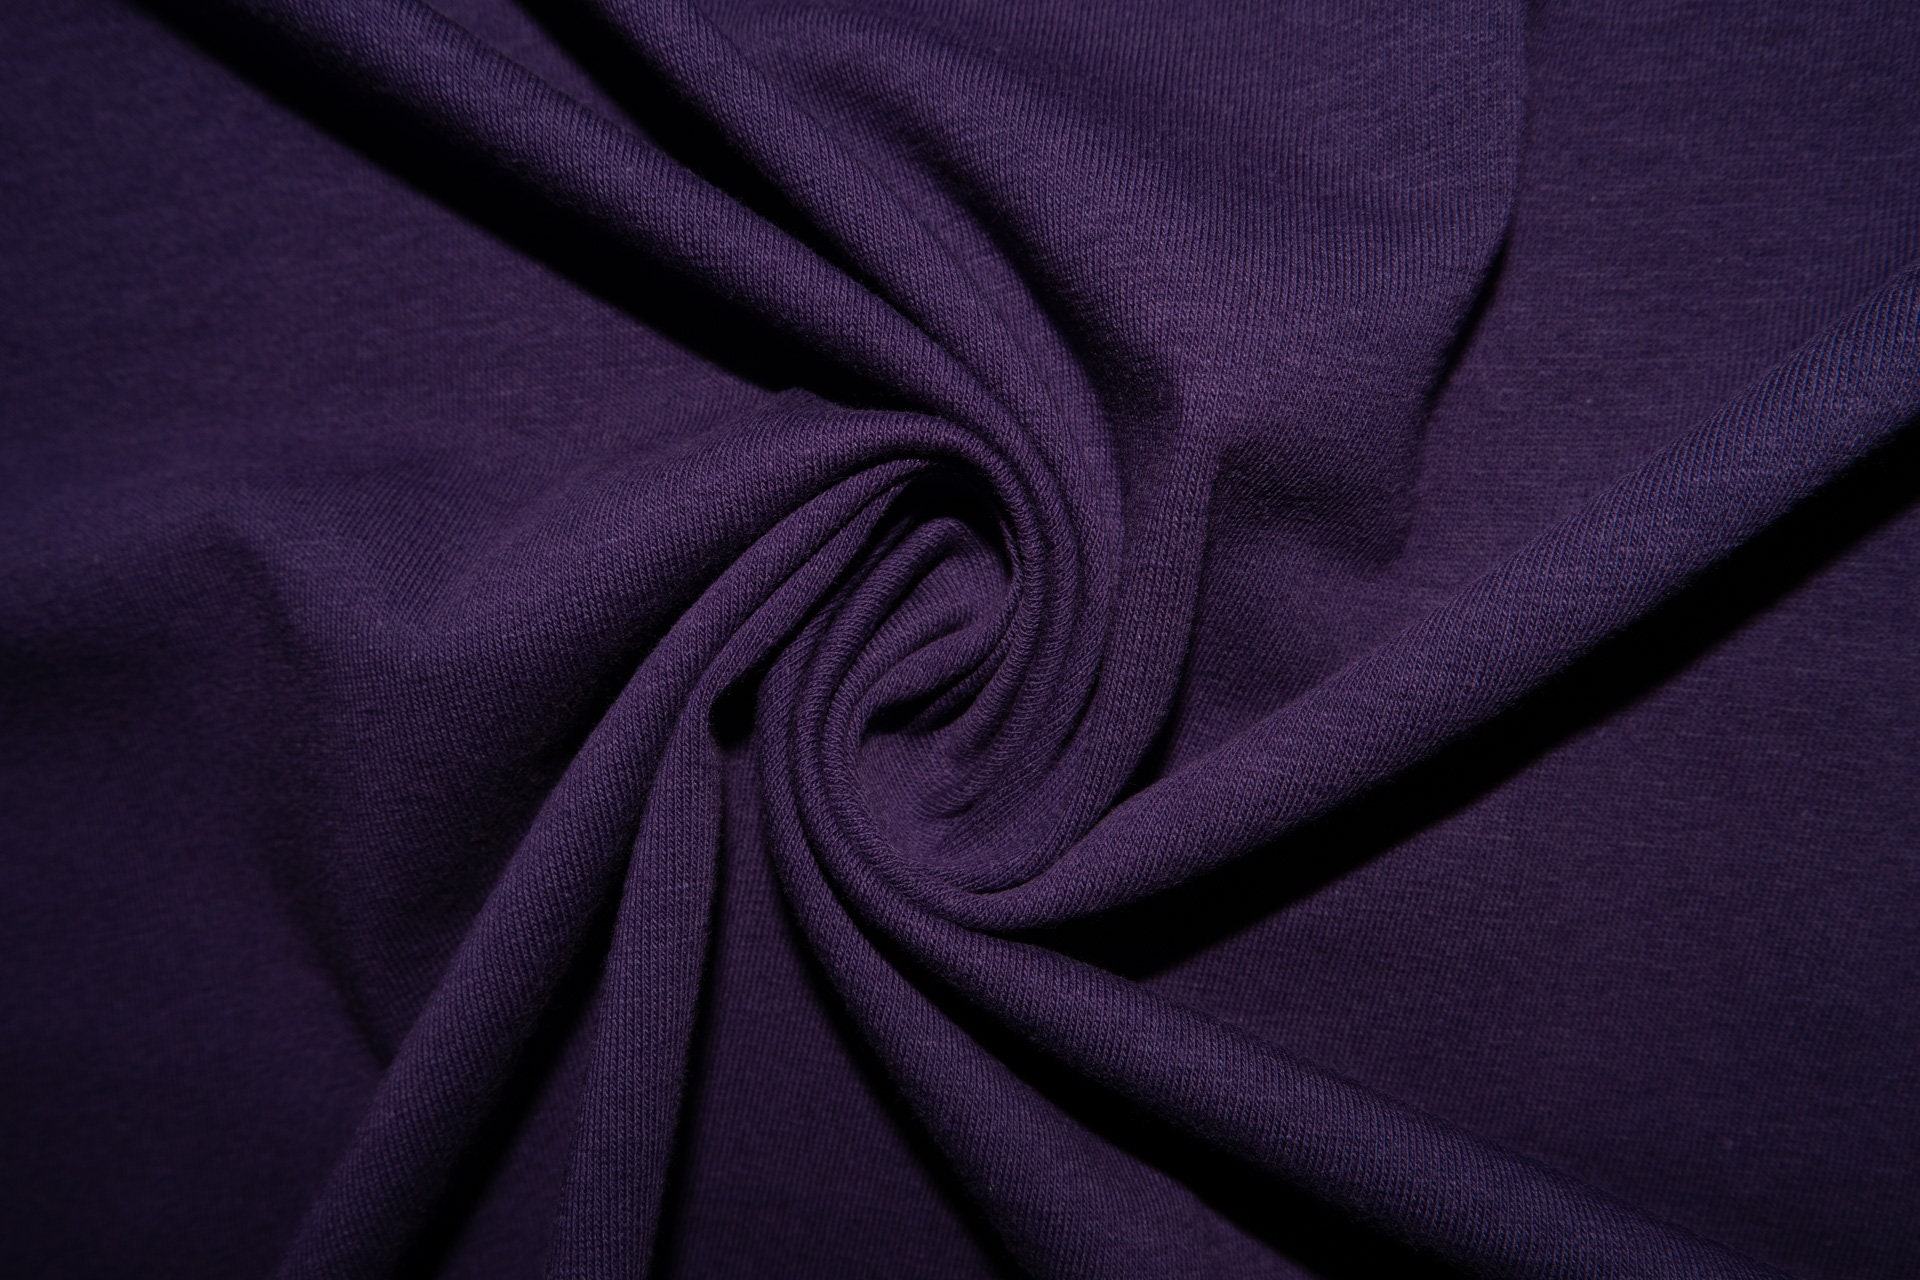 Purple Jersey Knit Cotton Lycra Spandex Stretch Sewing 9-10 Ounces BTY